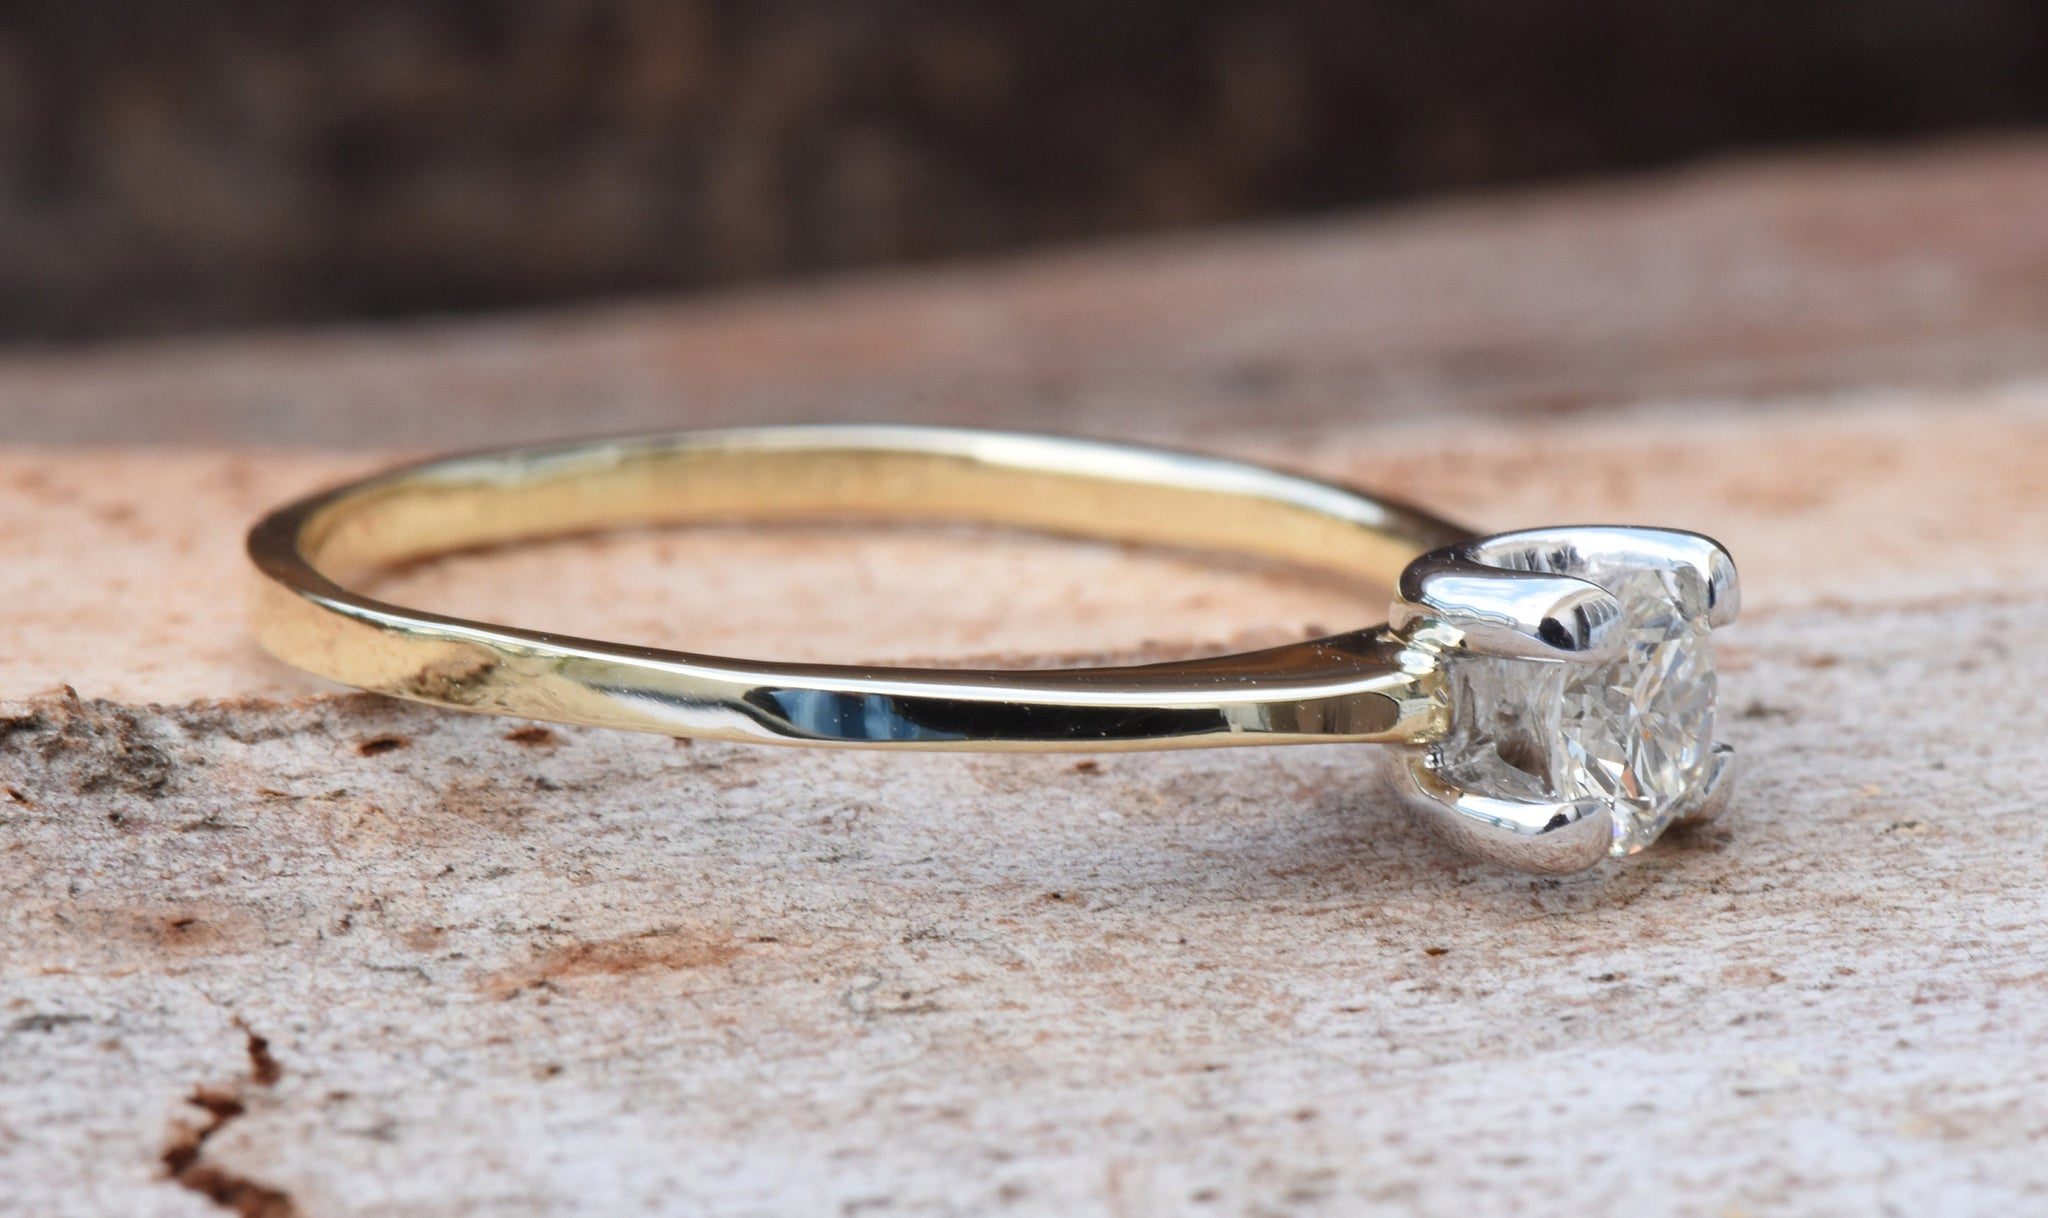 Gold Solitaire Ring-Solitaire ring-0.40ct Engagement Ring-Promise ring-Art deco ring-Custom Ring-Bridal ring-Solid gold ring-Branch ring